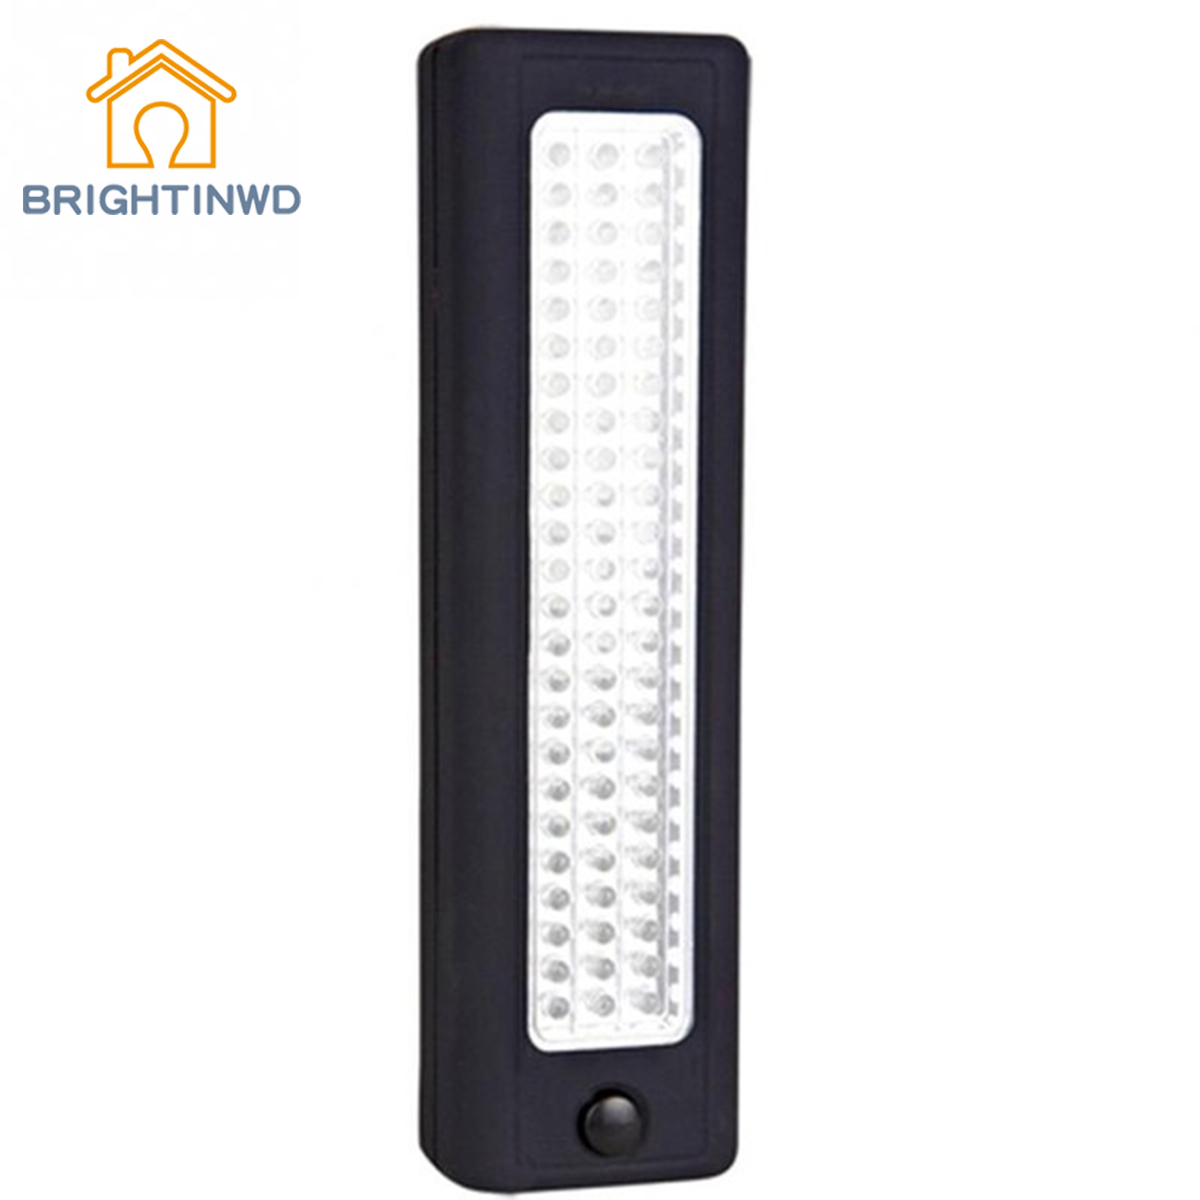 72 LED Bright Working Light Portable Outdoor Camping Light 6V 4.5W Overhaul Flashlight BRIGHTINWD